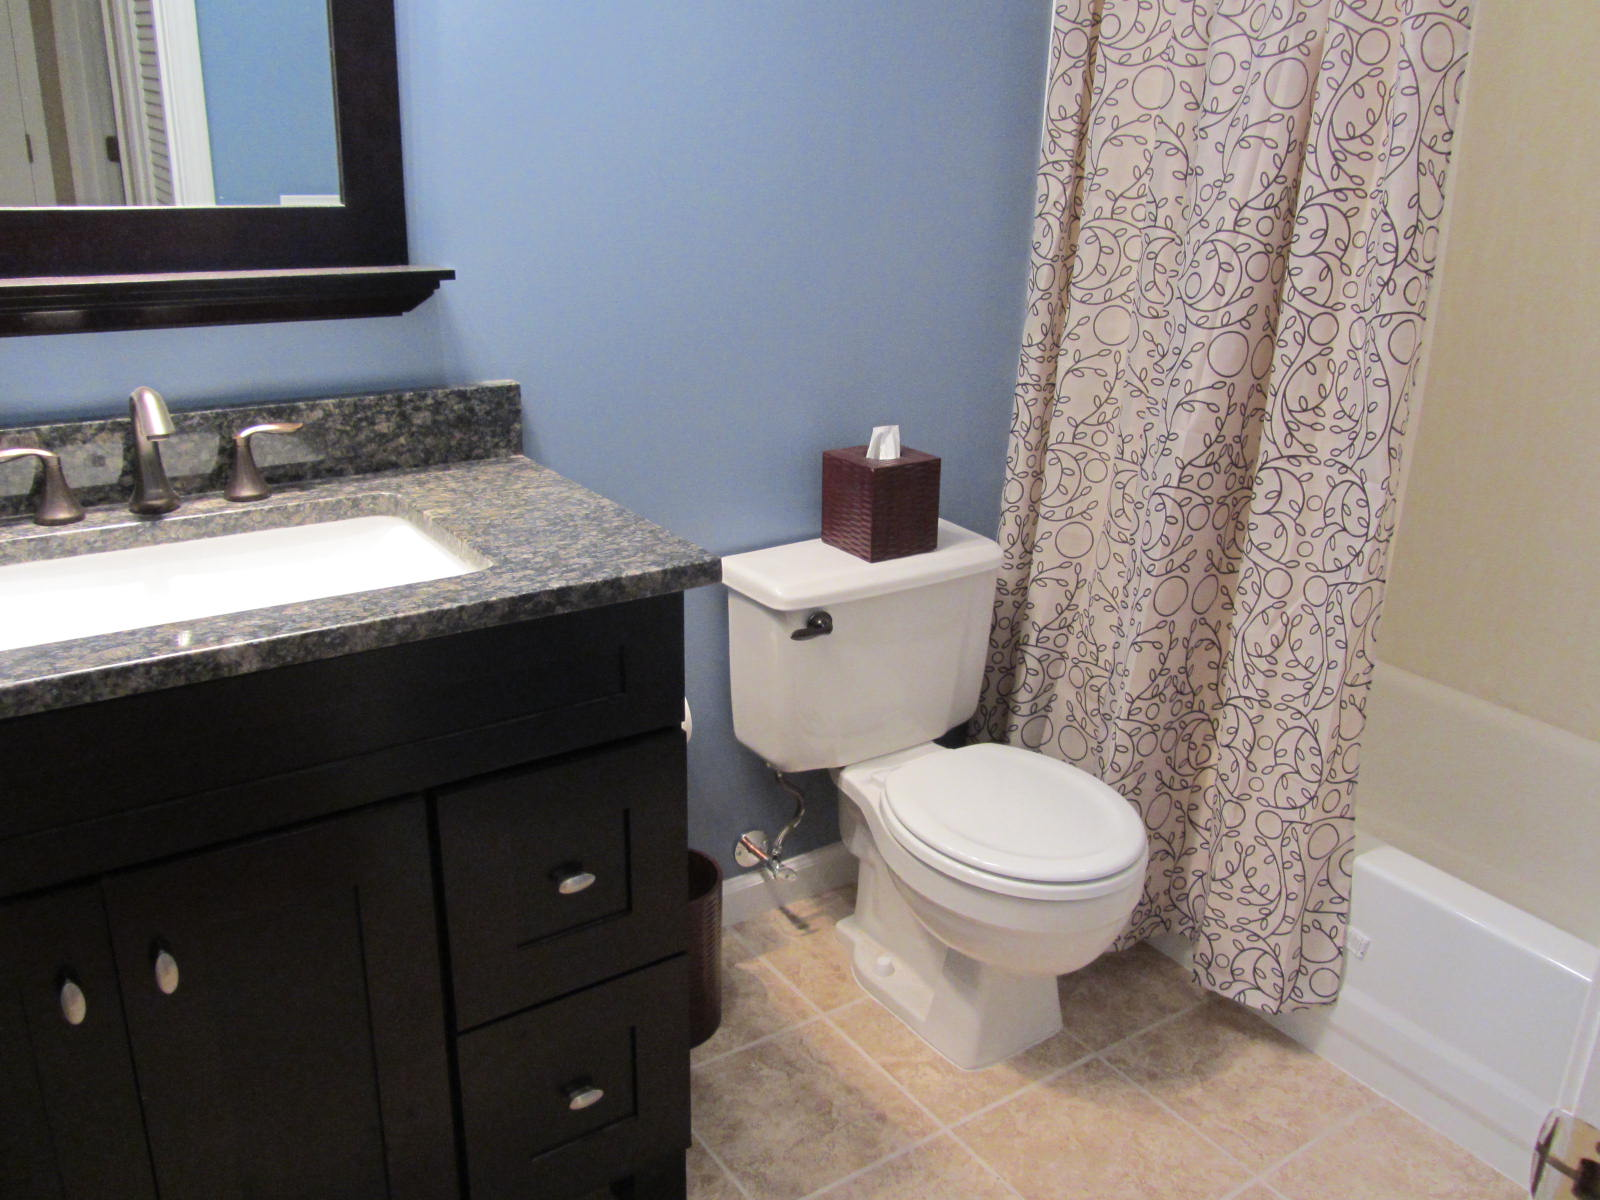 Small Bathroom Remodel On A Budget Future Expat - Bathroom remodel on a budget pictures